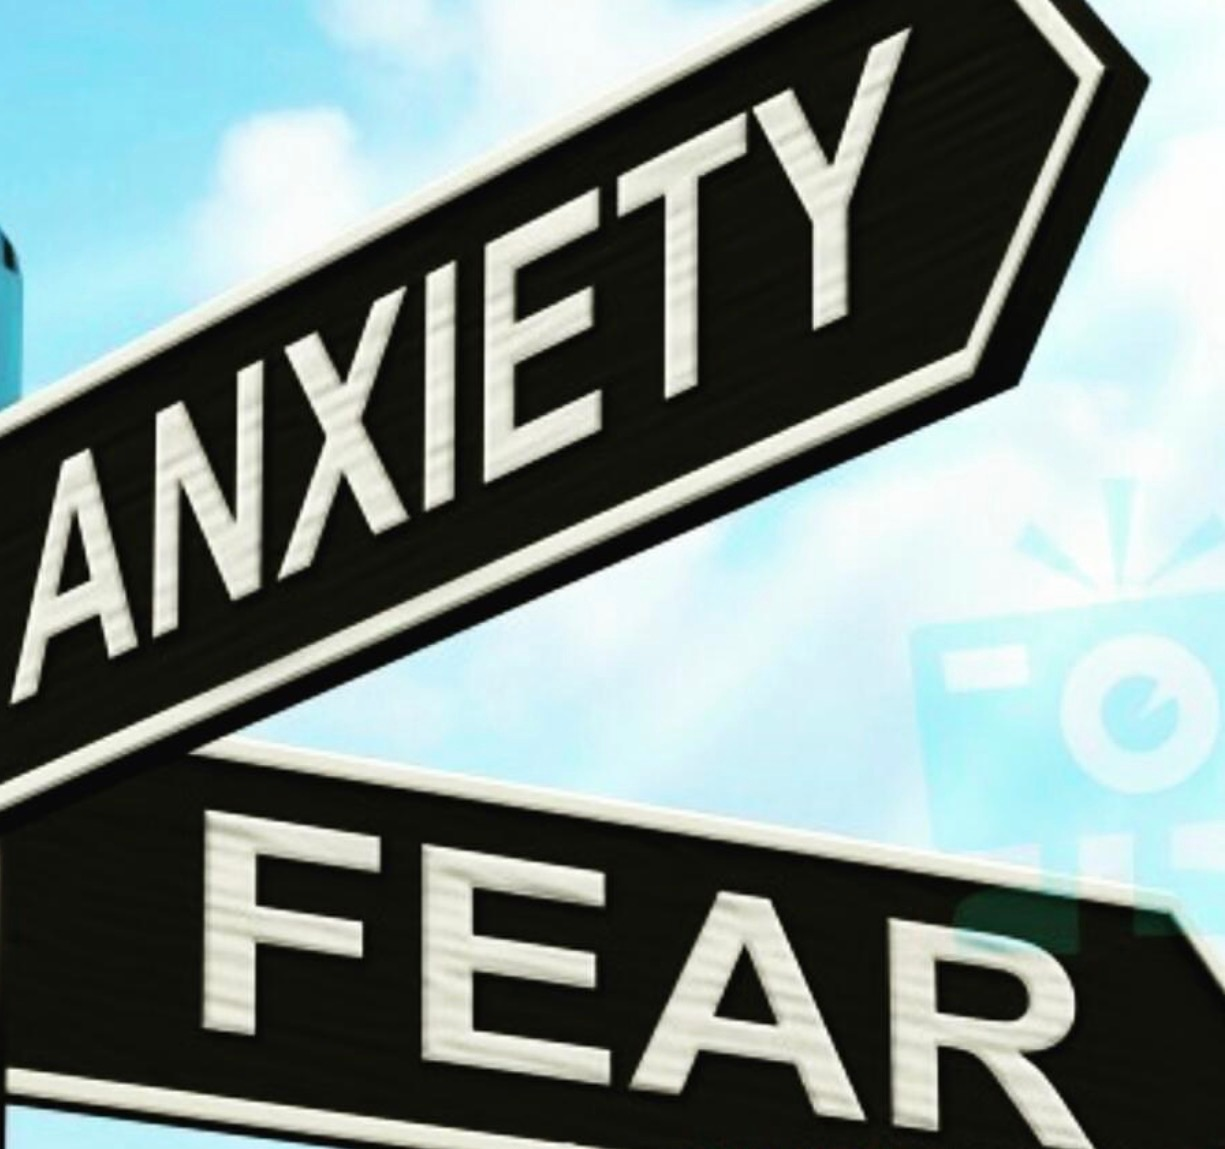 Anxiety fear street sign